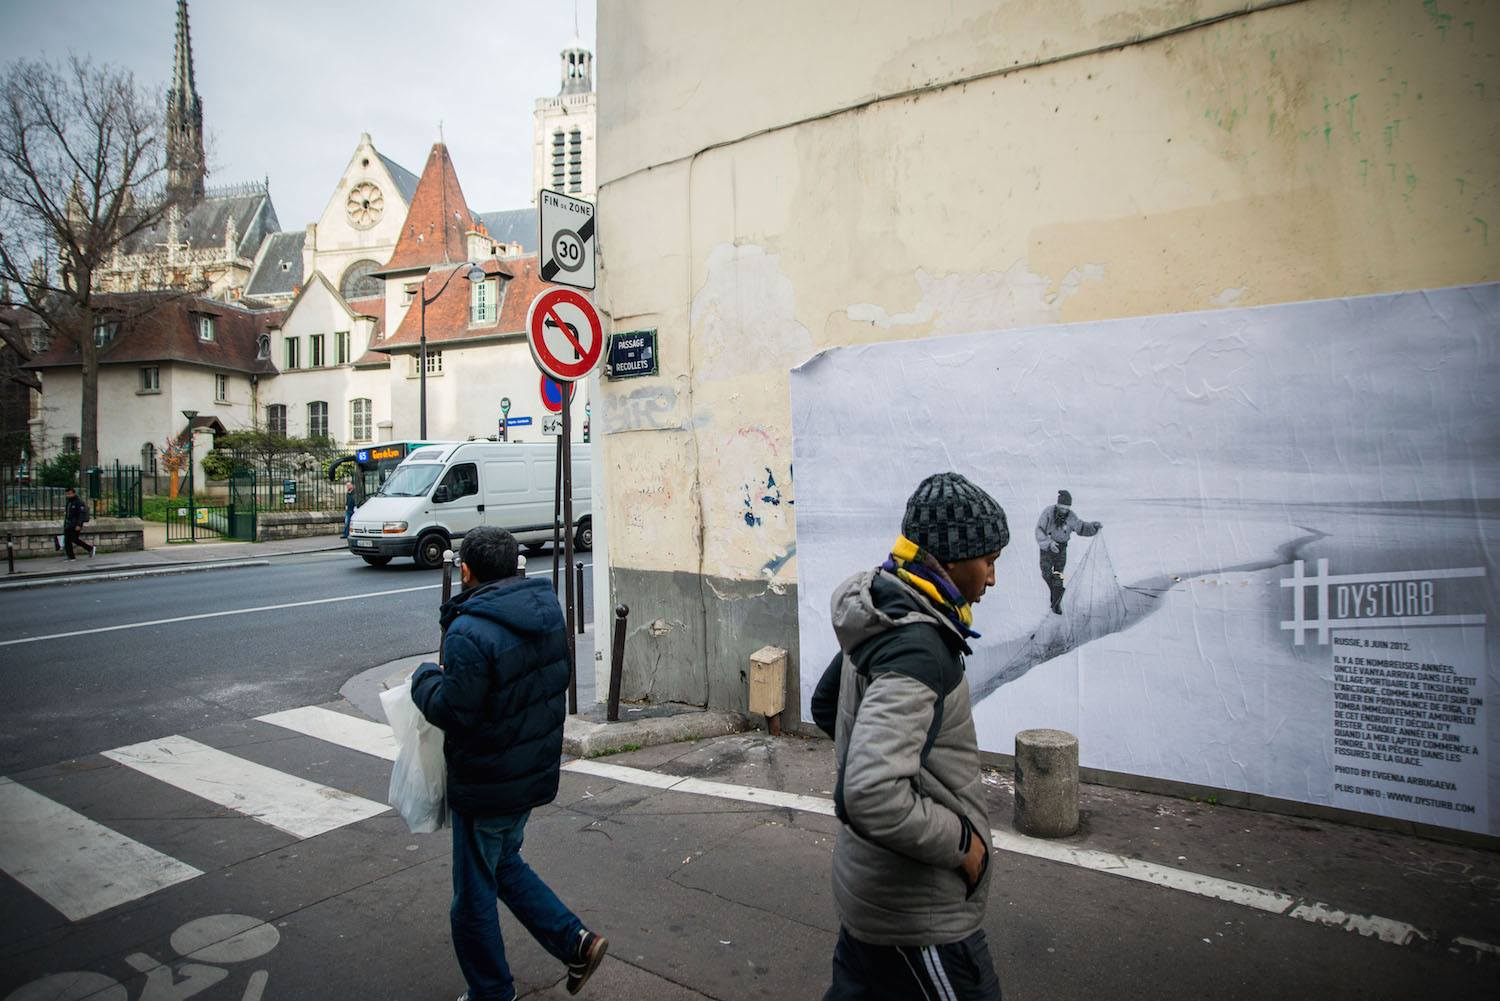 © Benjamin Girette. For COP21, we teamed up with the Magnum Foundation, Yale School of Forestry and Environ-mental Studies, NYU-ITP Students & Twillio to #reframeclimate by pasting current photojournalism in the streets of Paris. Pictured is ©Evgenia Arbugaeva's photograph which can be found on 3-5 Passage des Récollets. The caption reads: Russia, June 8th, 2012. Many years ago uncle Vanya arrived to a small Arc-tic port town Tiksi from Riga as a sailor on a ship and immediately fell in love with the place and stayed. Now every June when Laptev Sea starts to melt, he catches the moment to fish in the cracks of the ice.